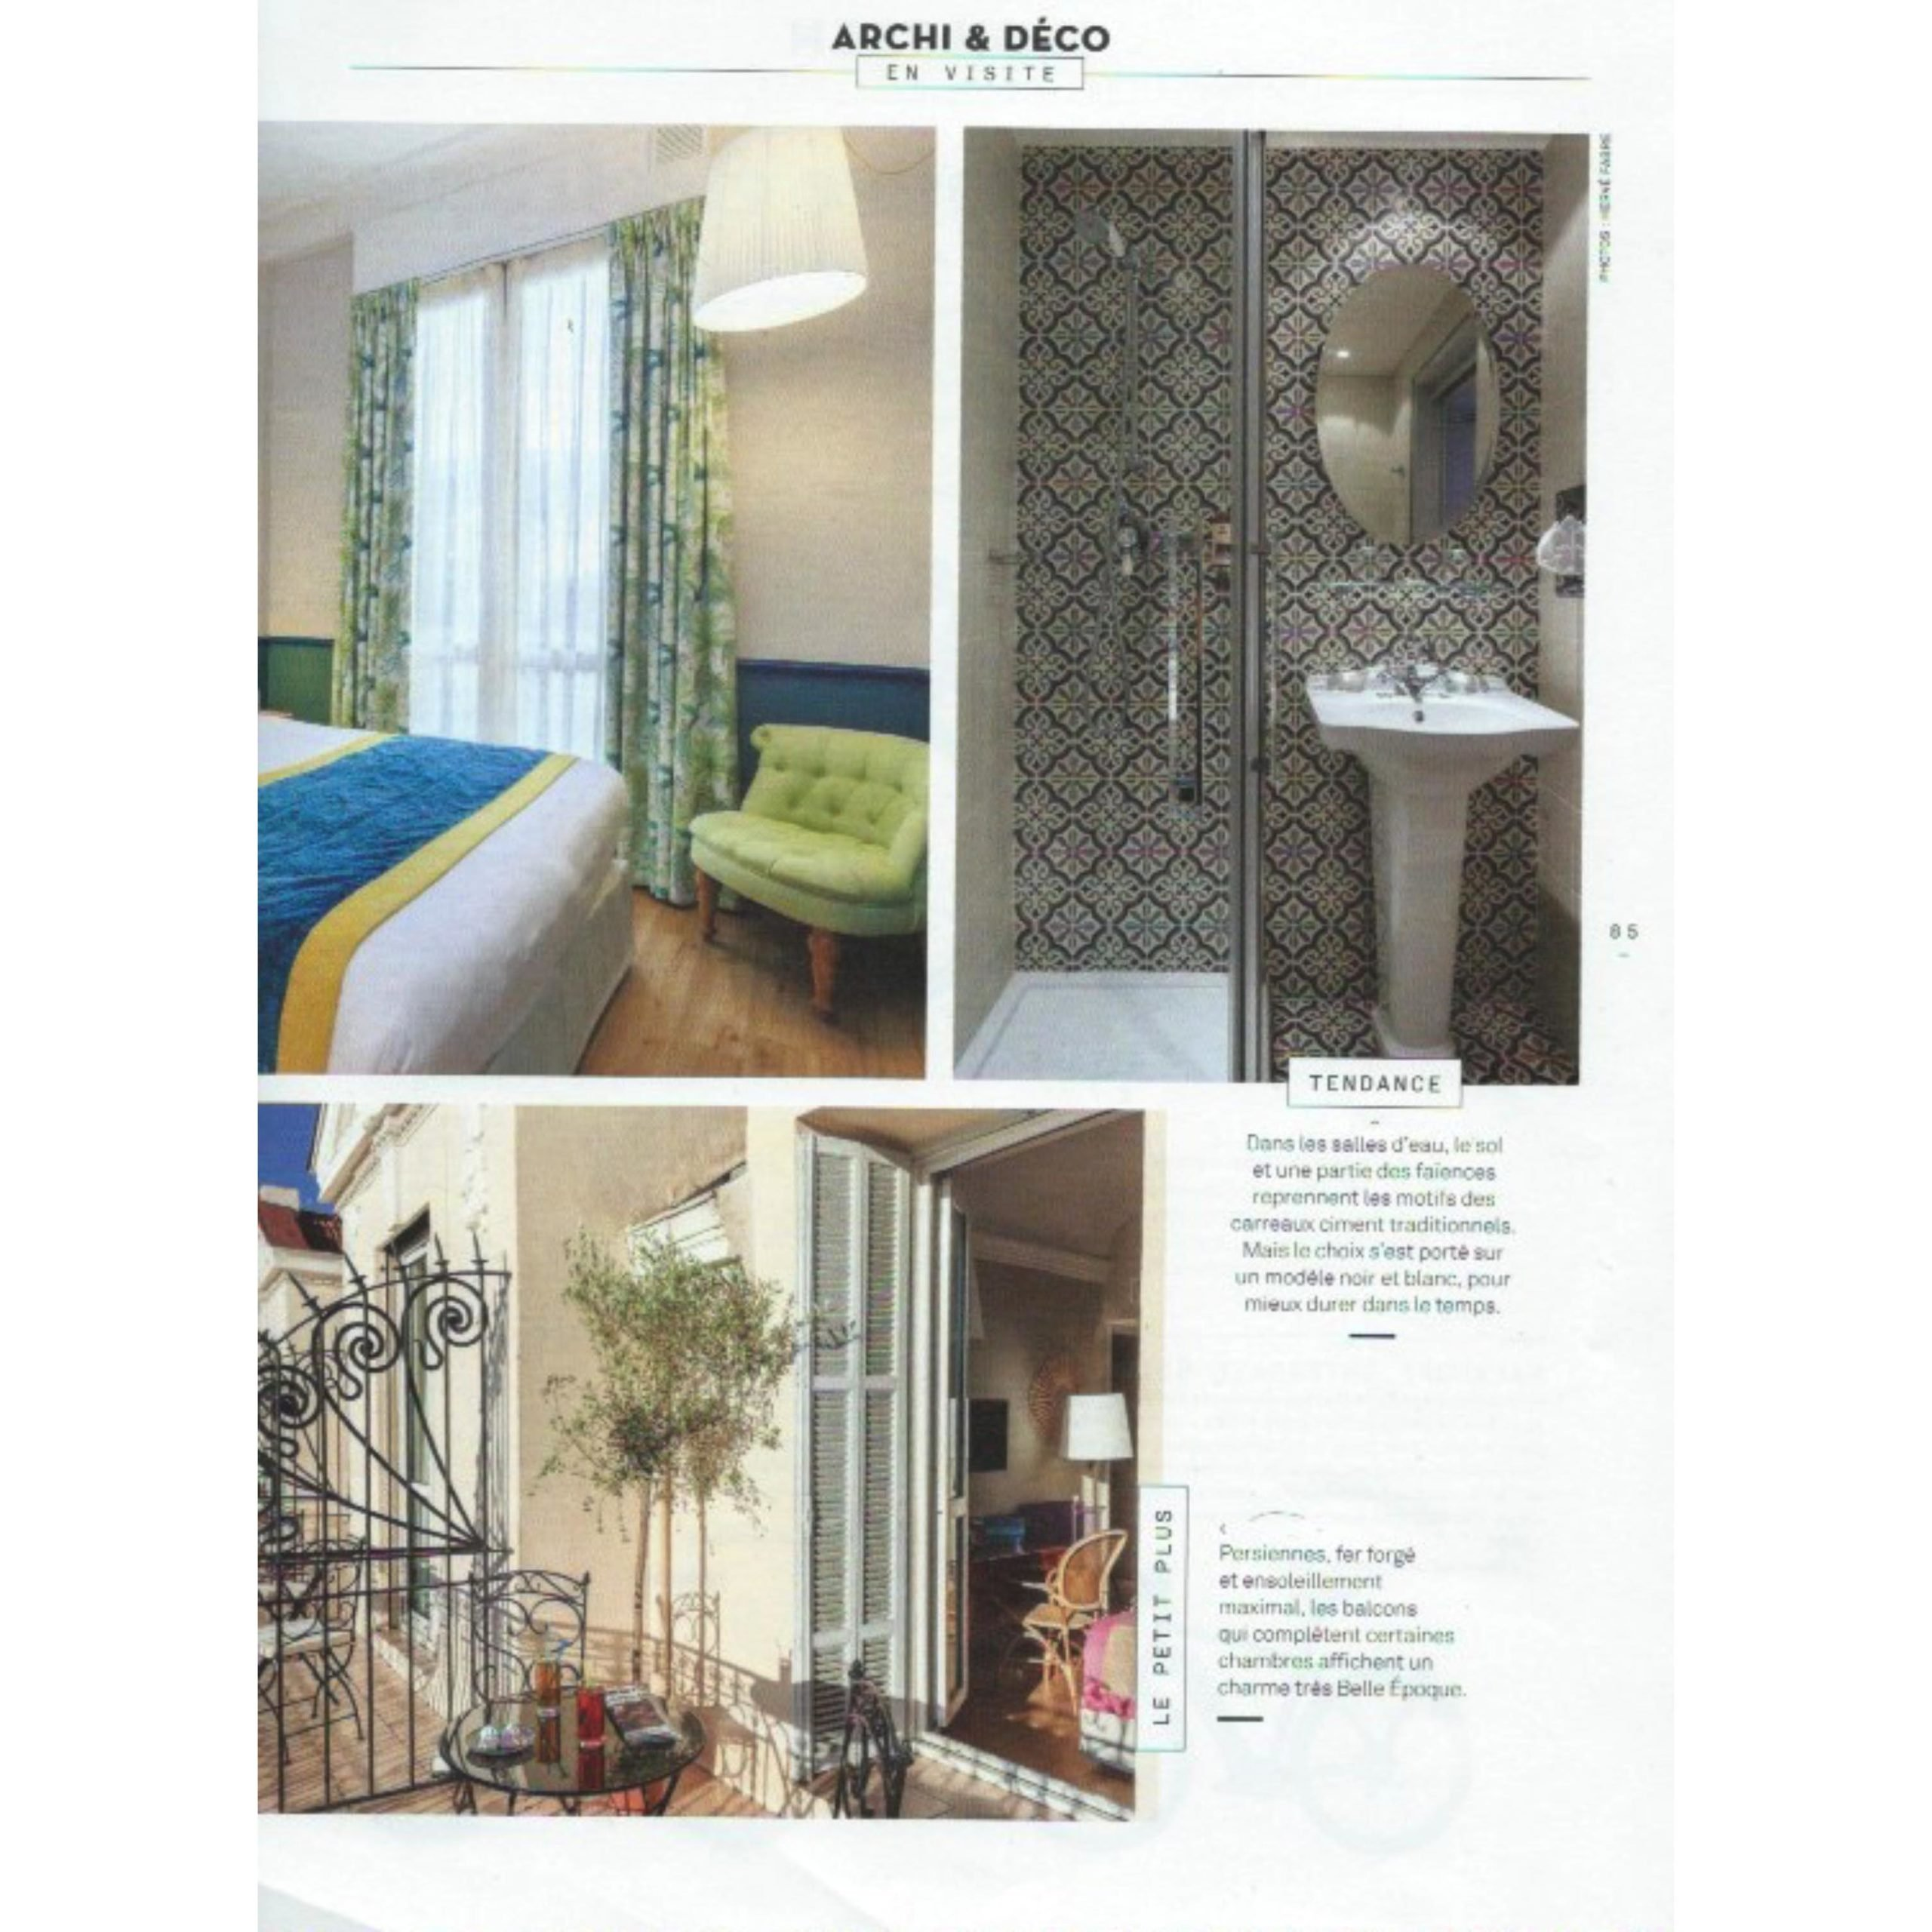 PRESSE OPTIMISTE MAGAZINE Article HOTEL 4 etoiles stephanie cayet architecture interieure design